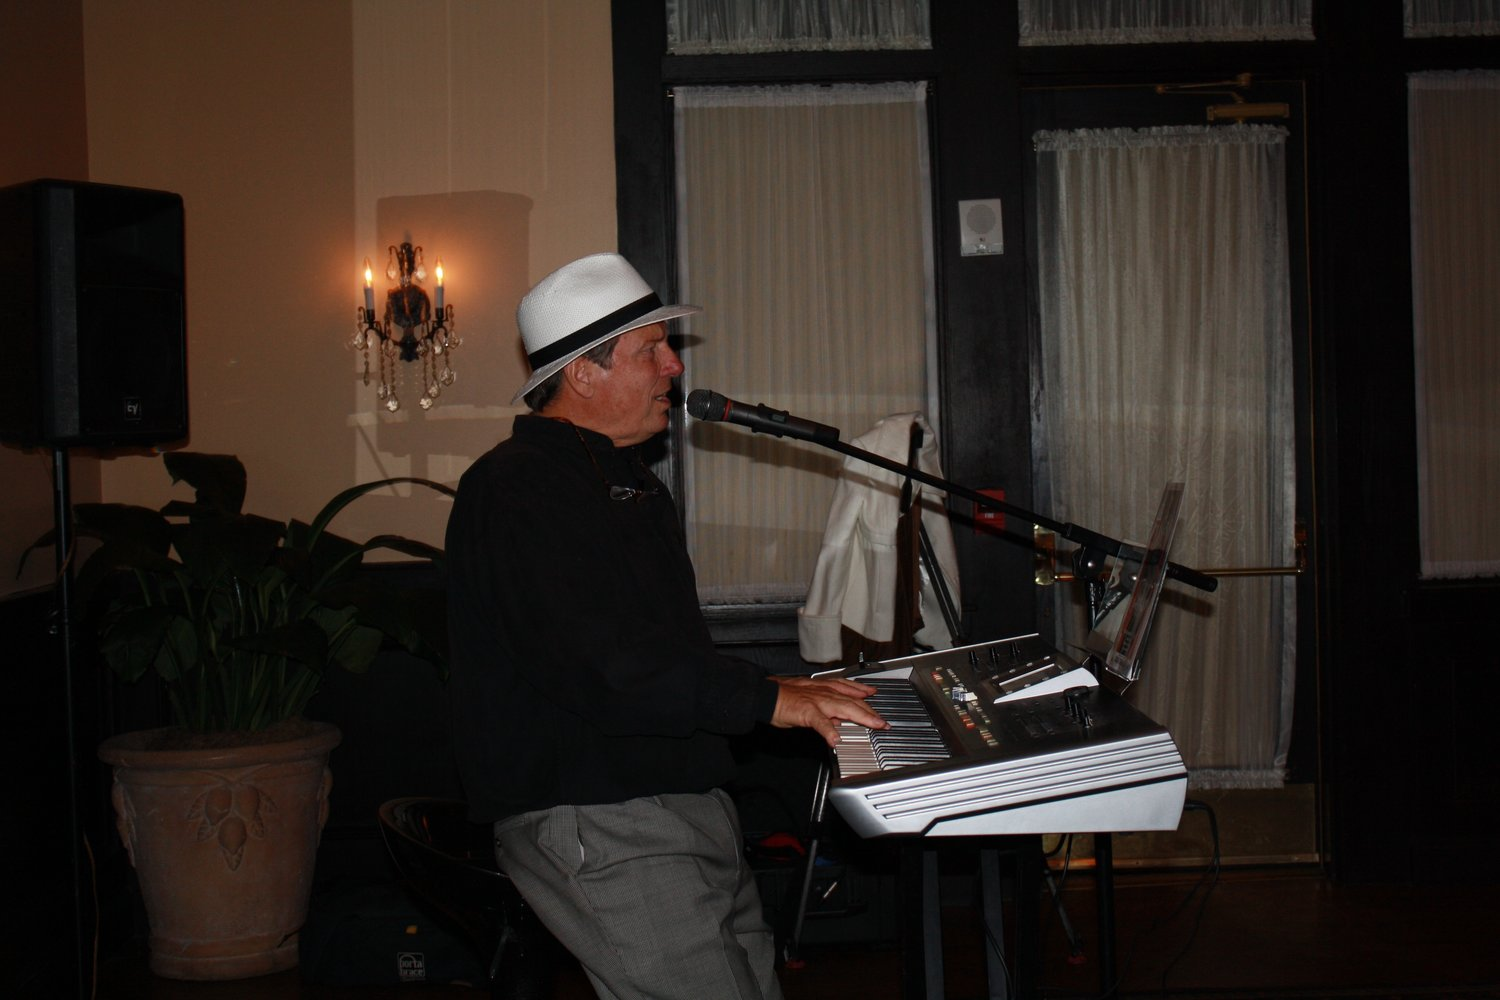 Murray Goff entertained the crowd gathered at Maggiano's for the Ivana B Skinny launch party.